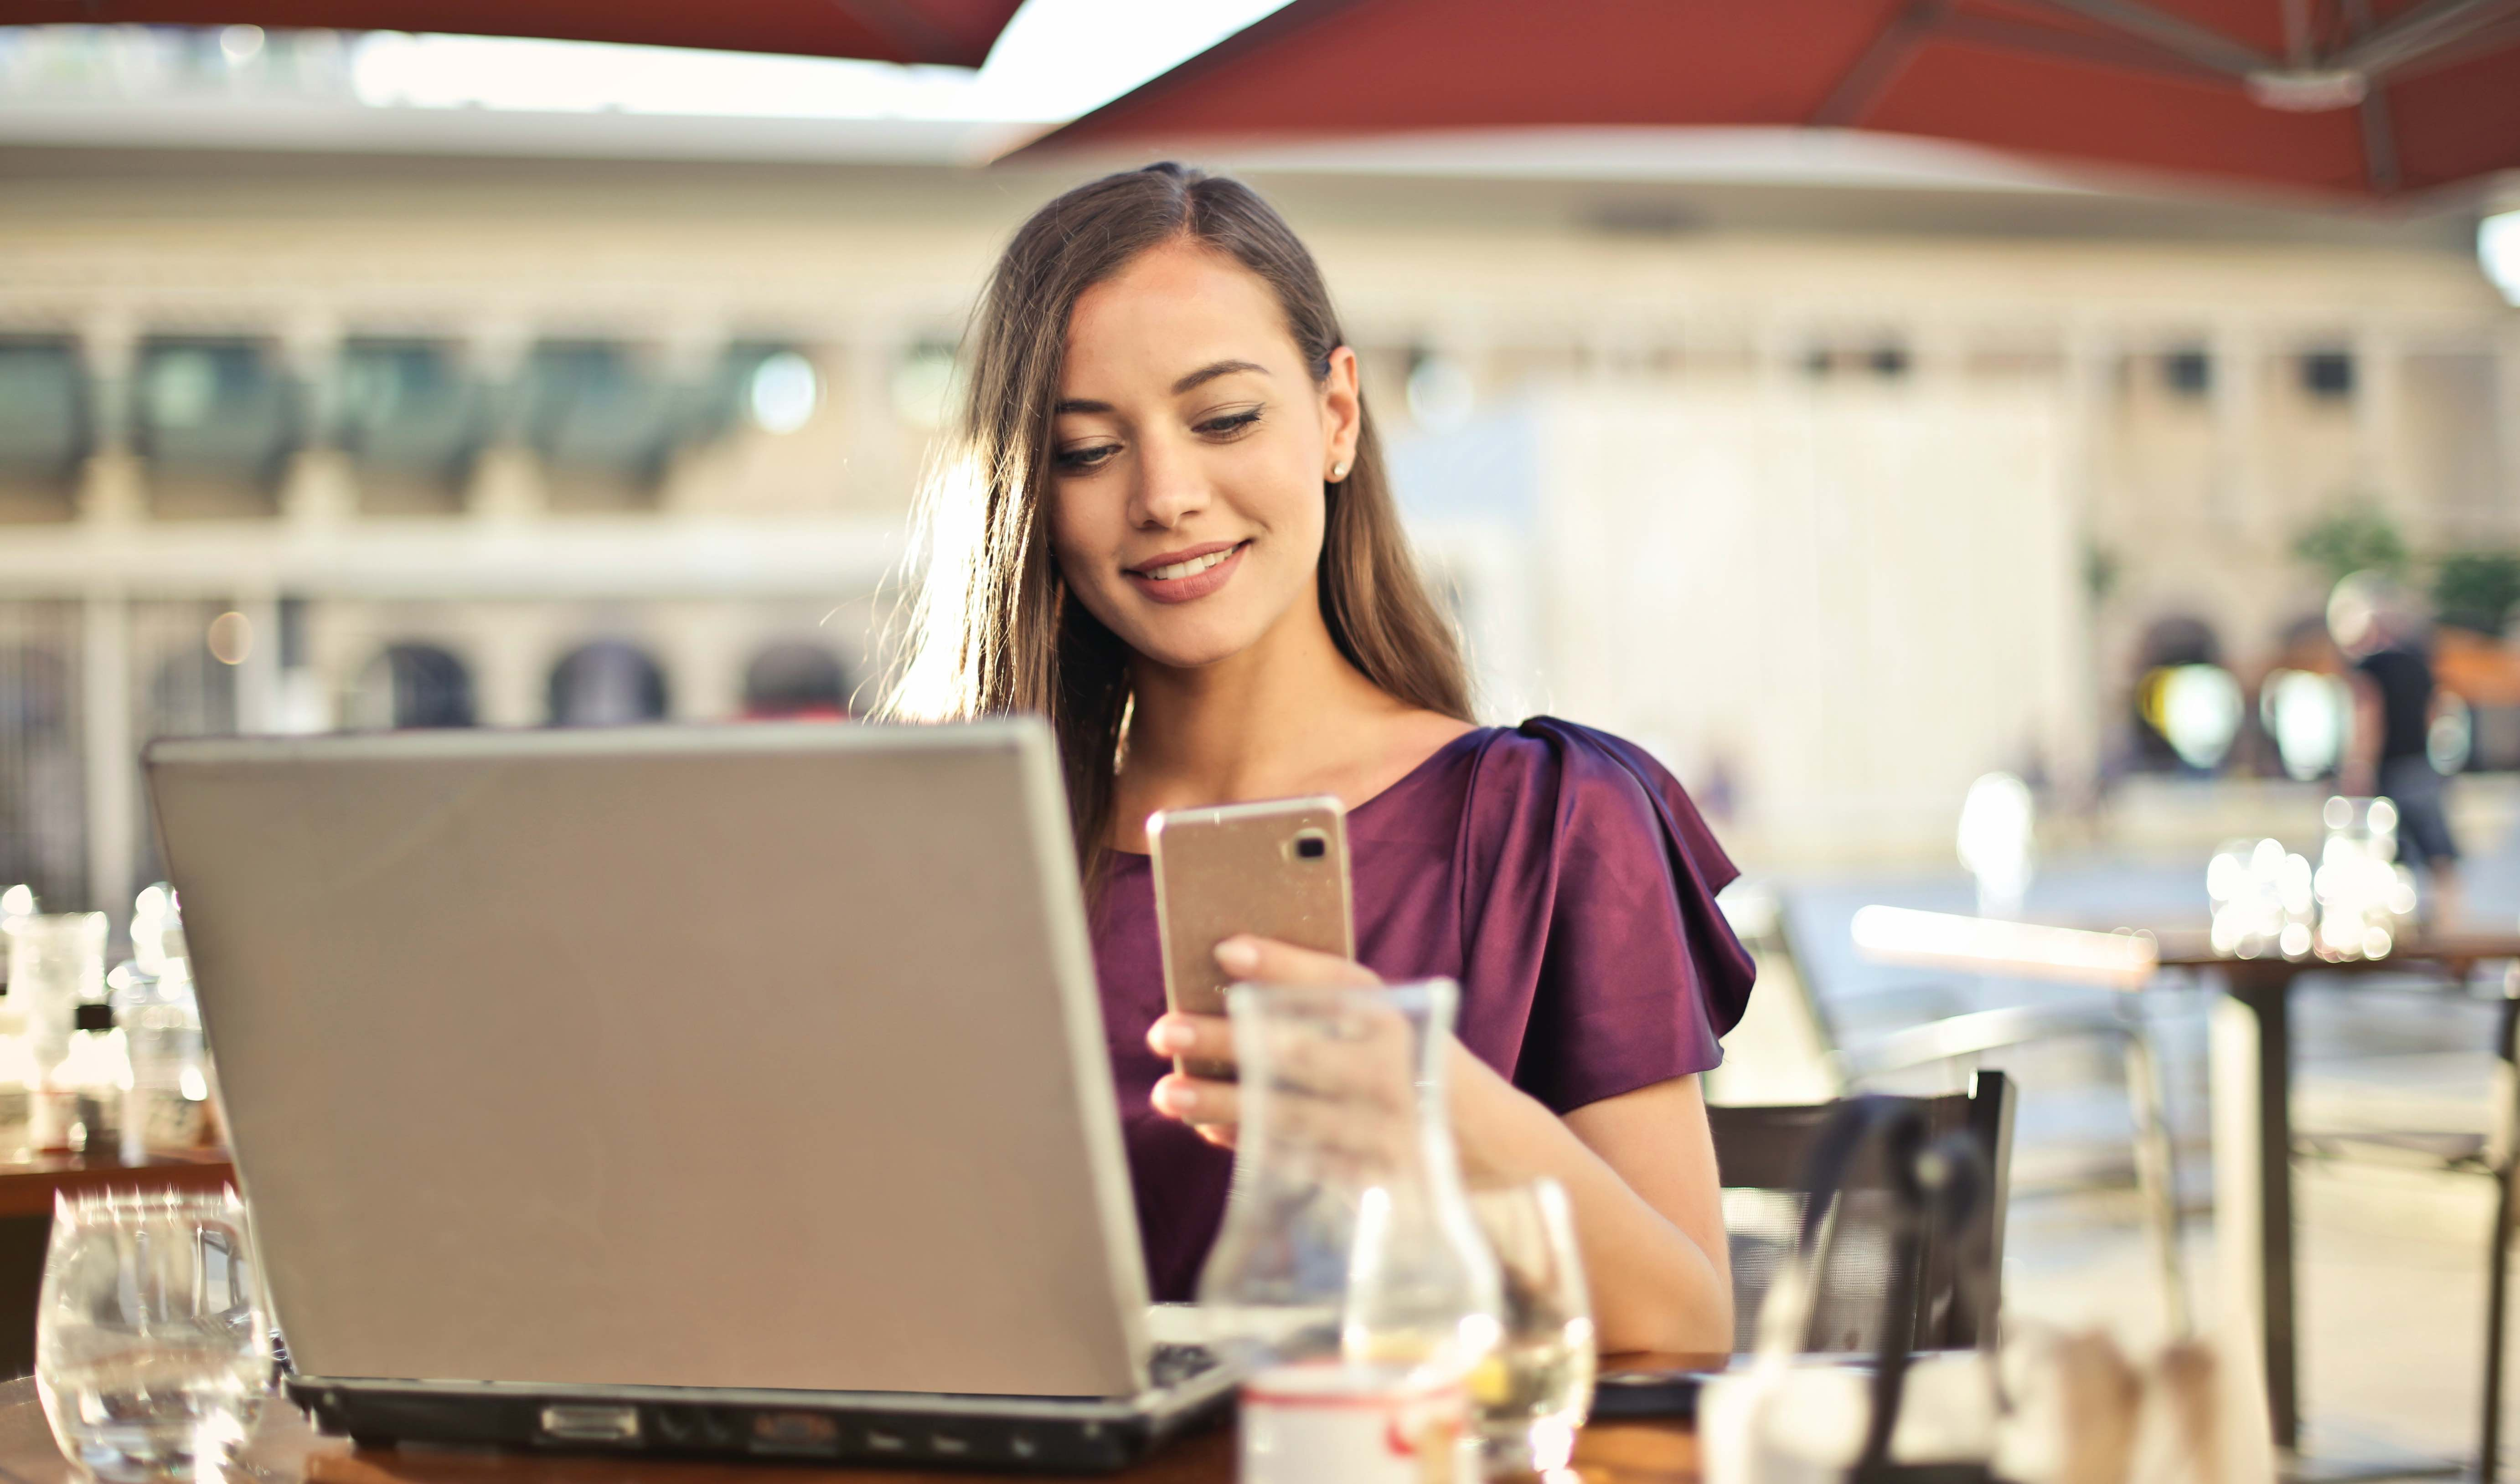 Woman working remotely at cafe